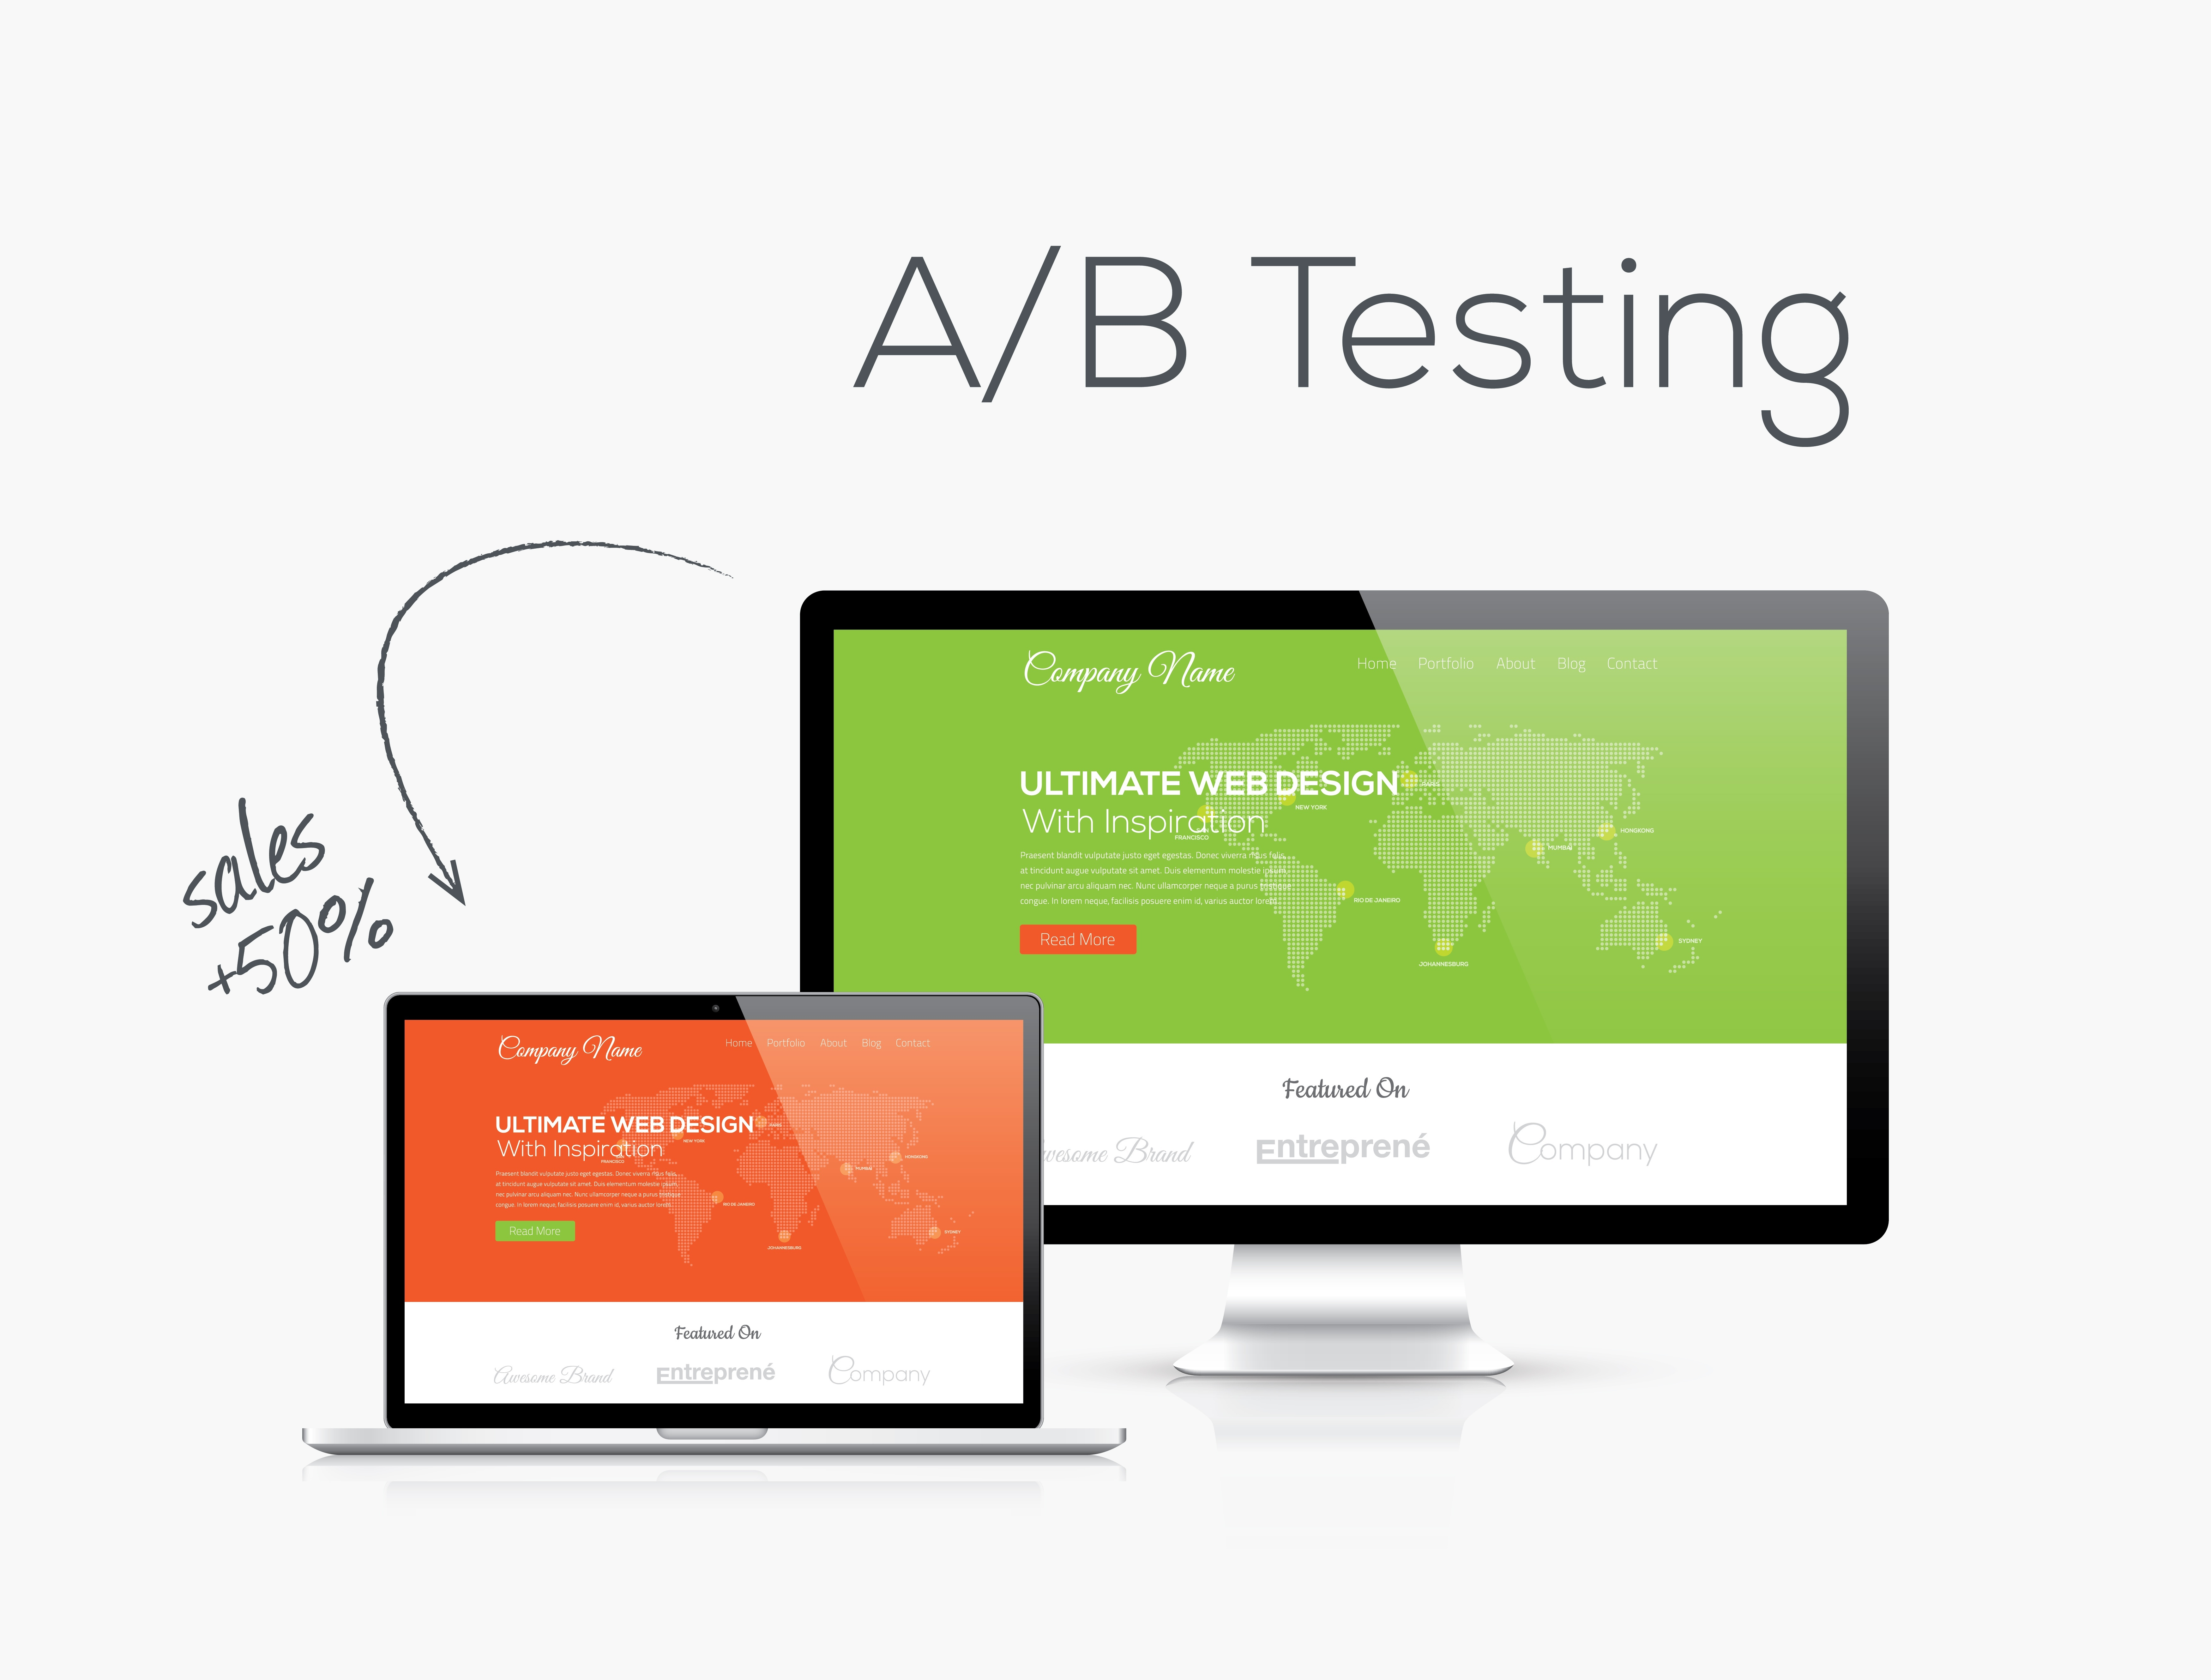 A/B testing can help improve your conversion rates